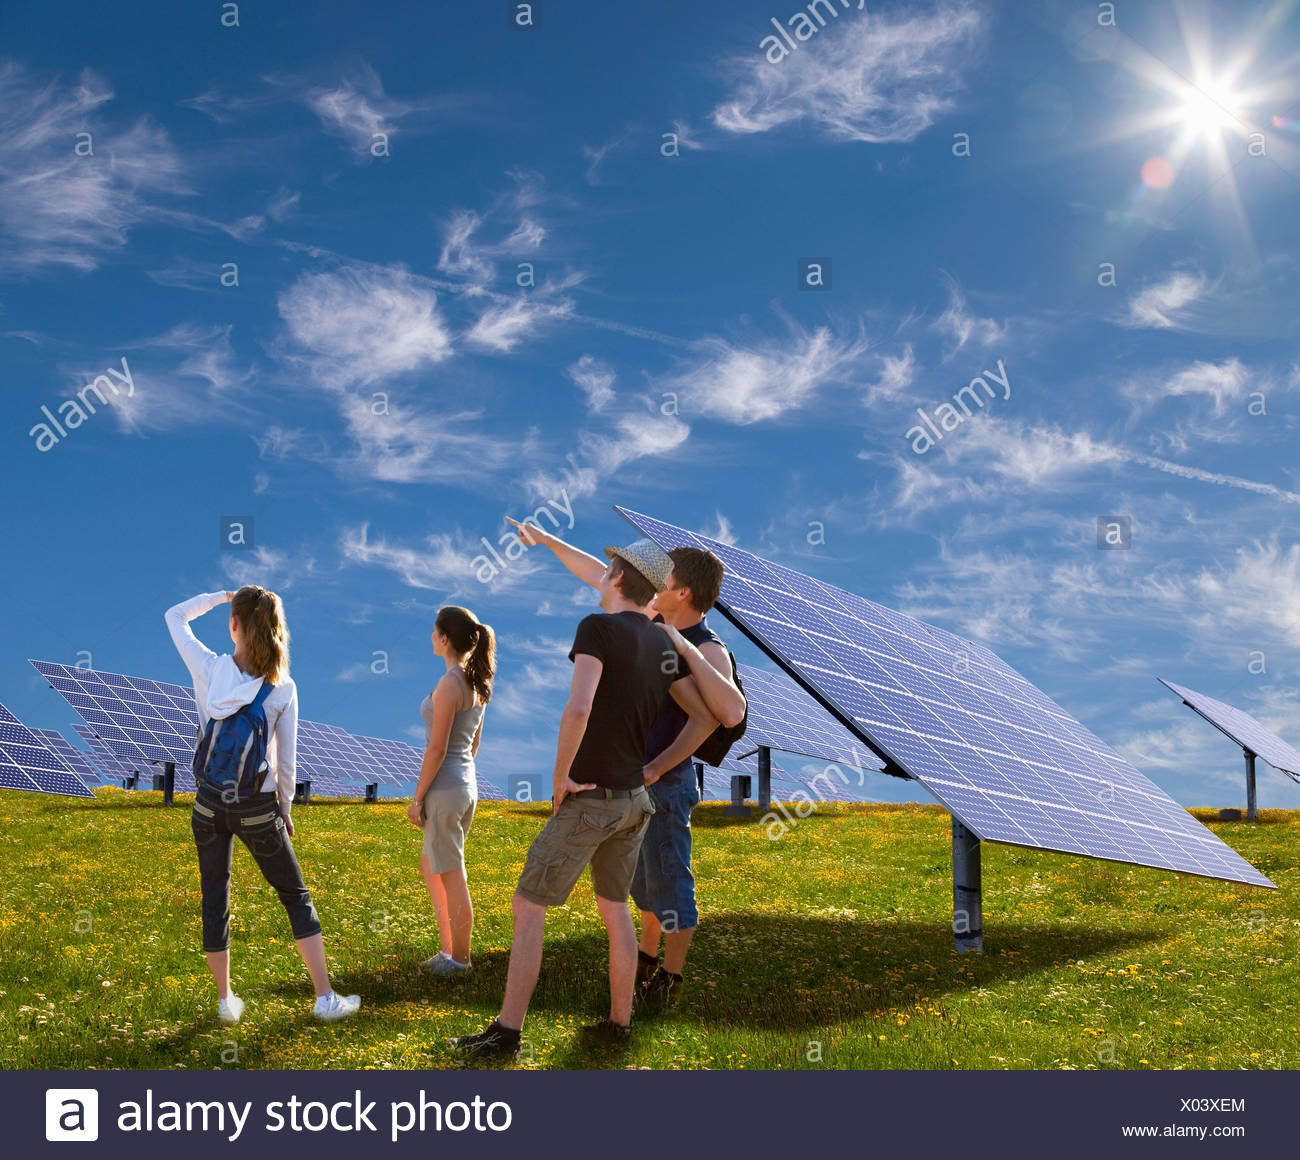 People standing in field by solar panels - Stock Image